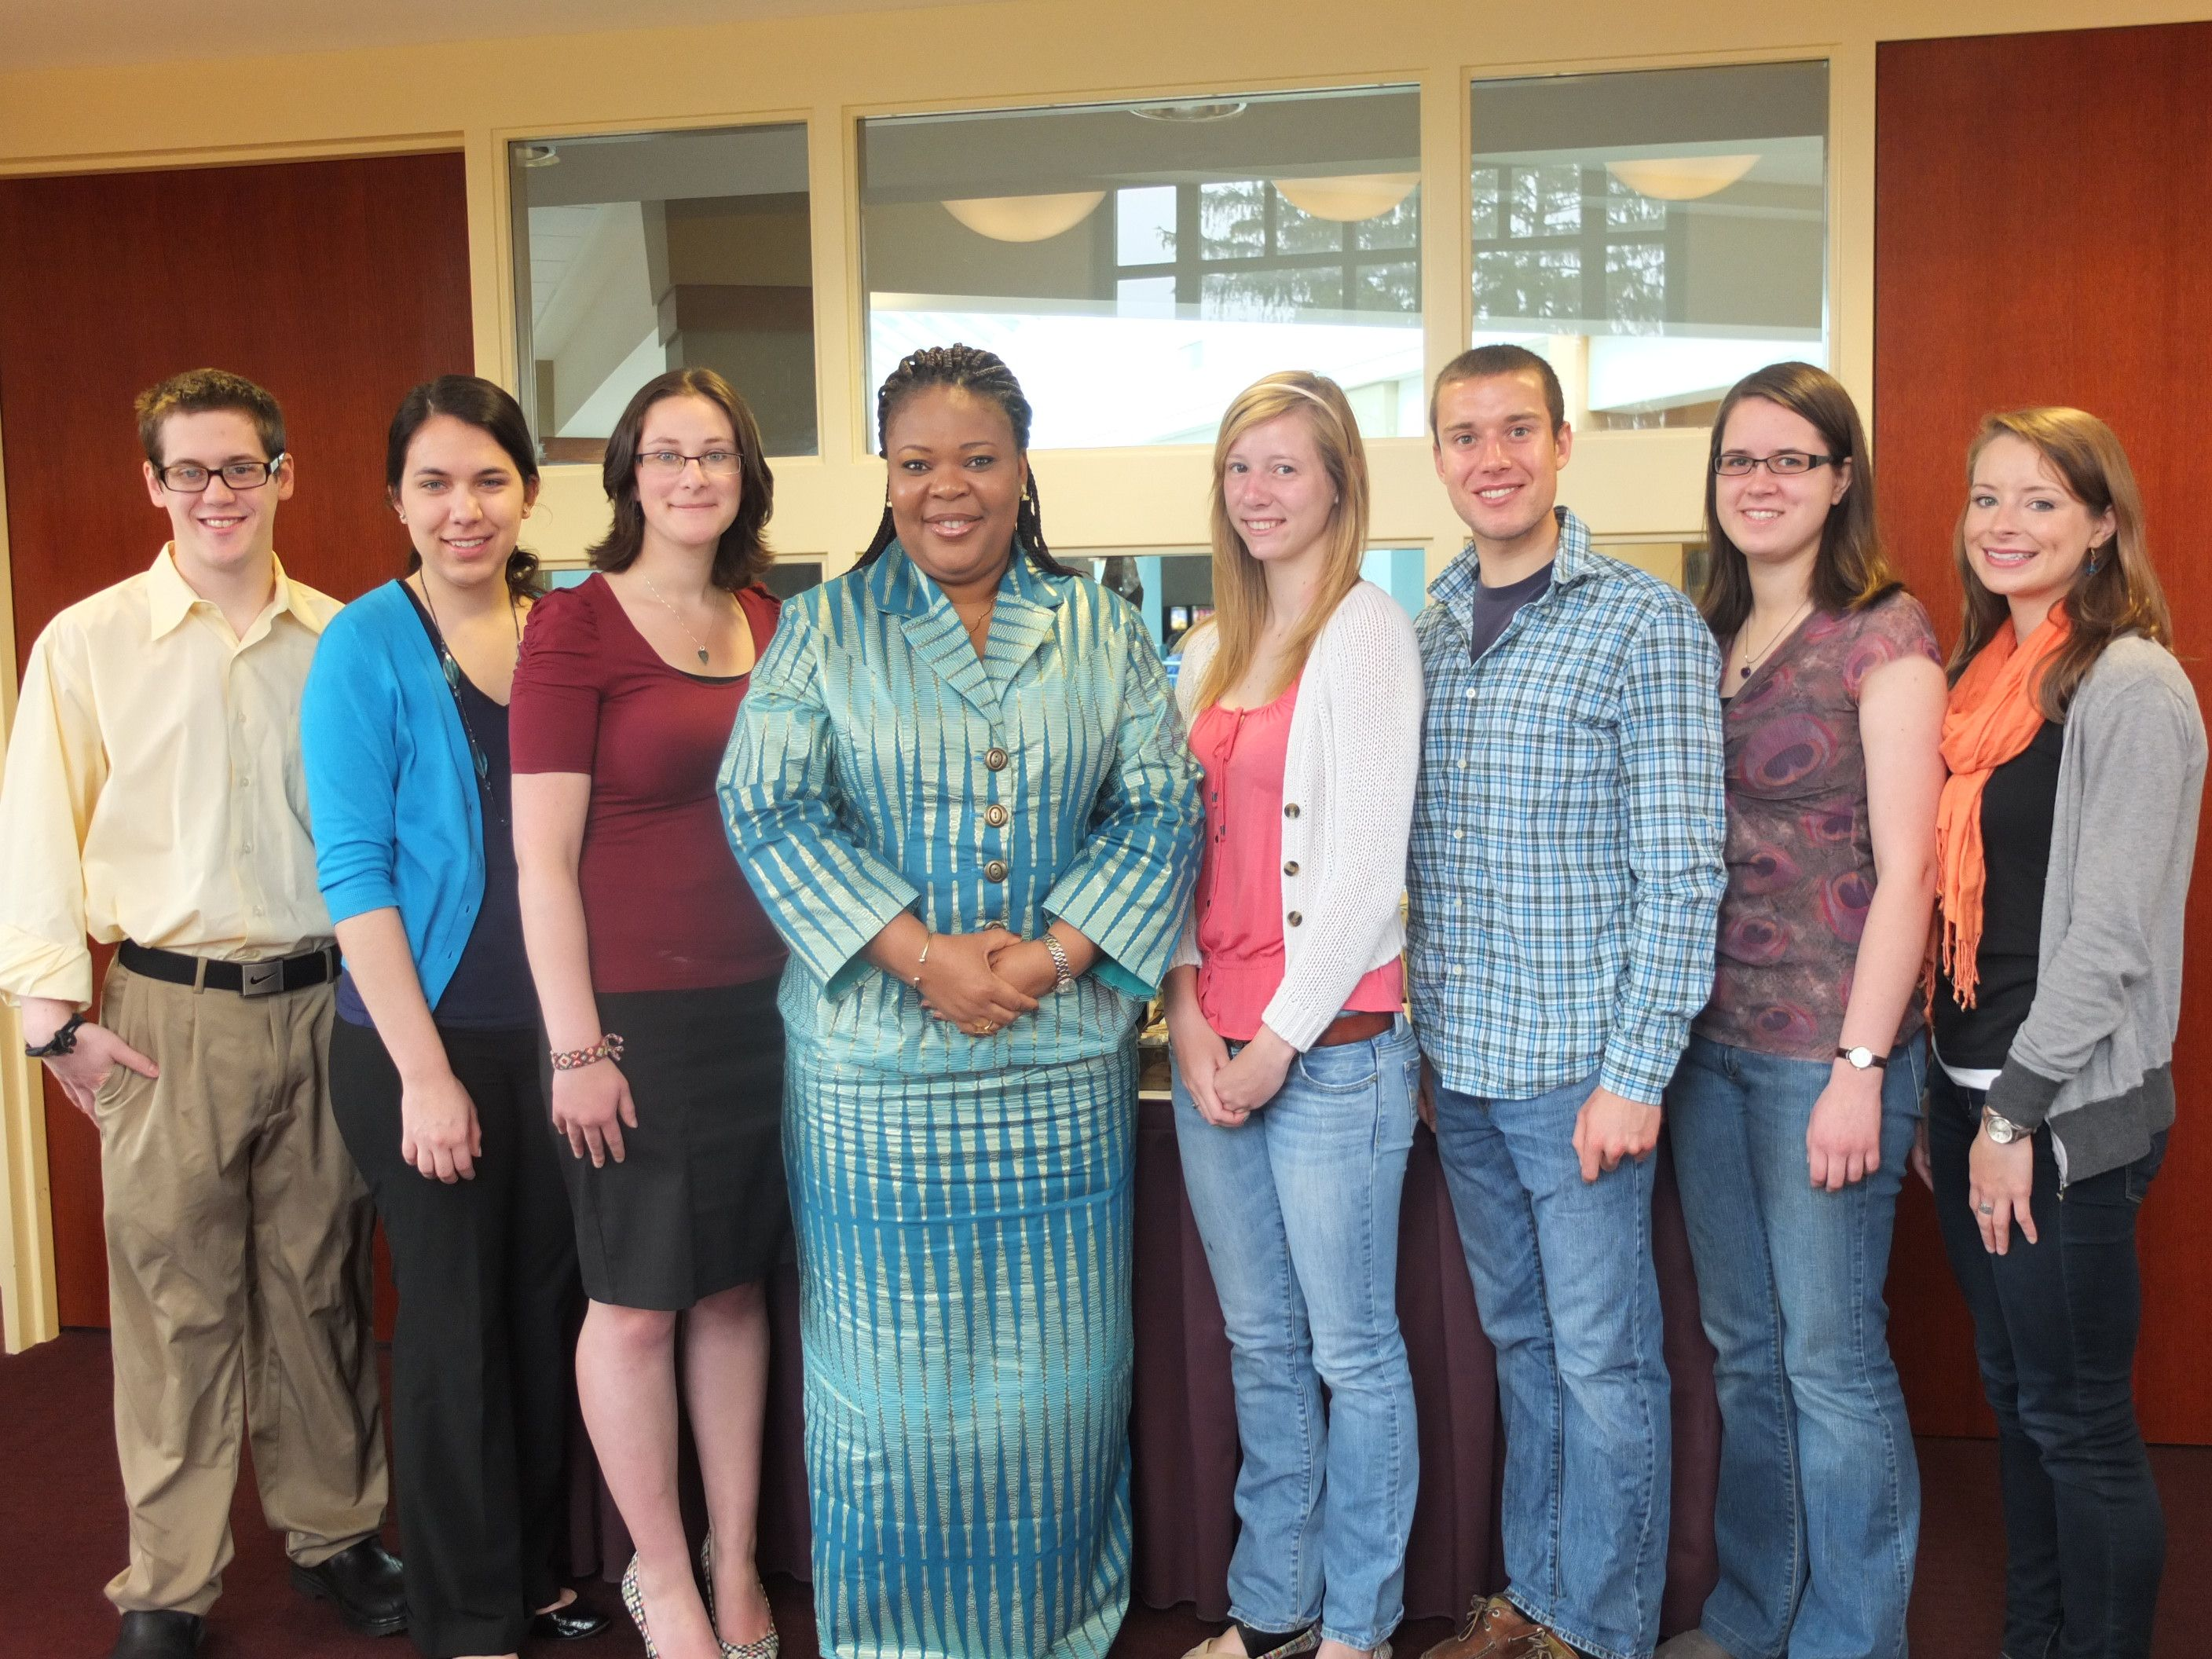 Students with Leymah Gbowee